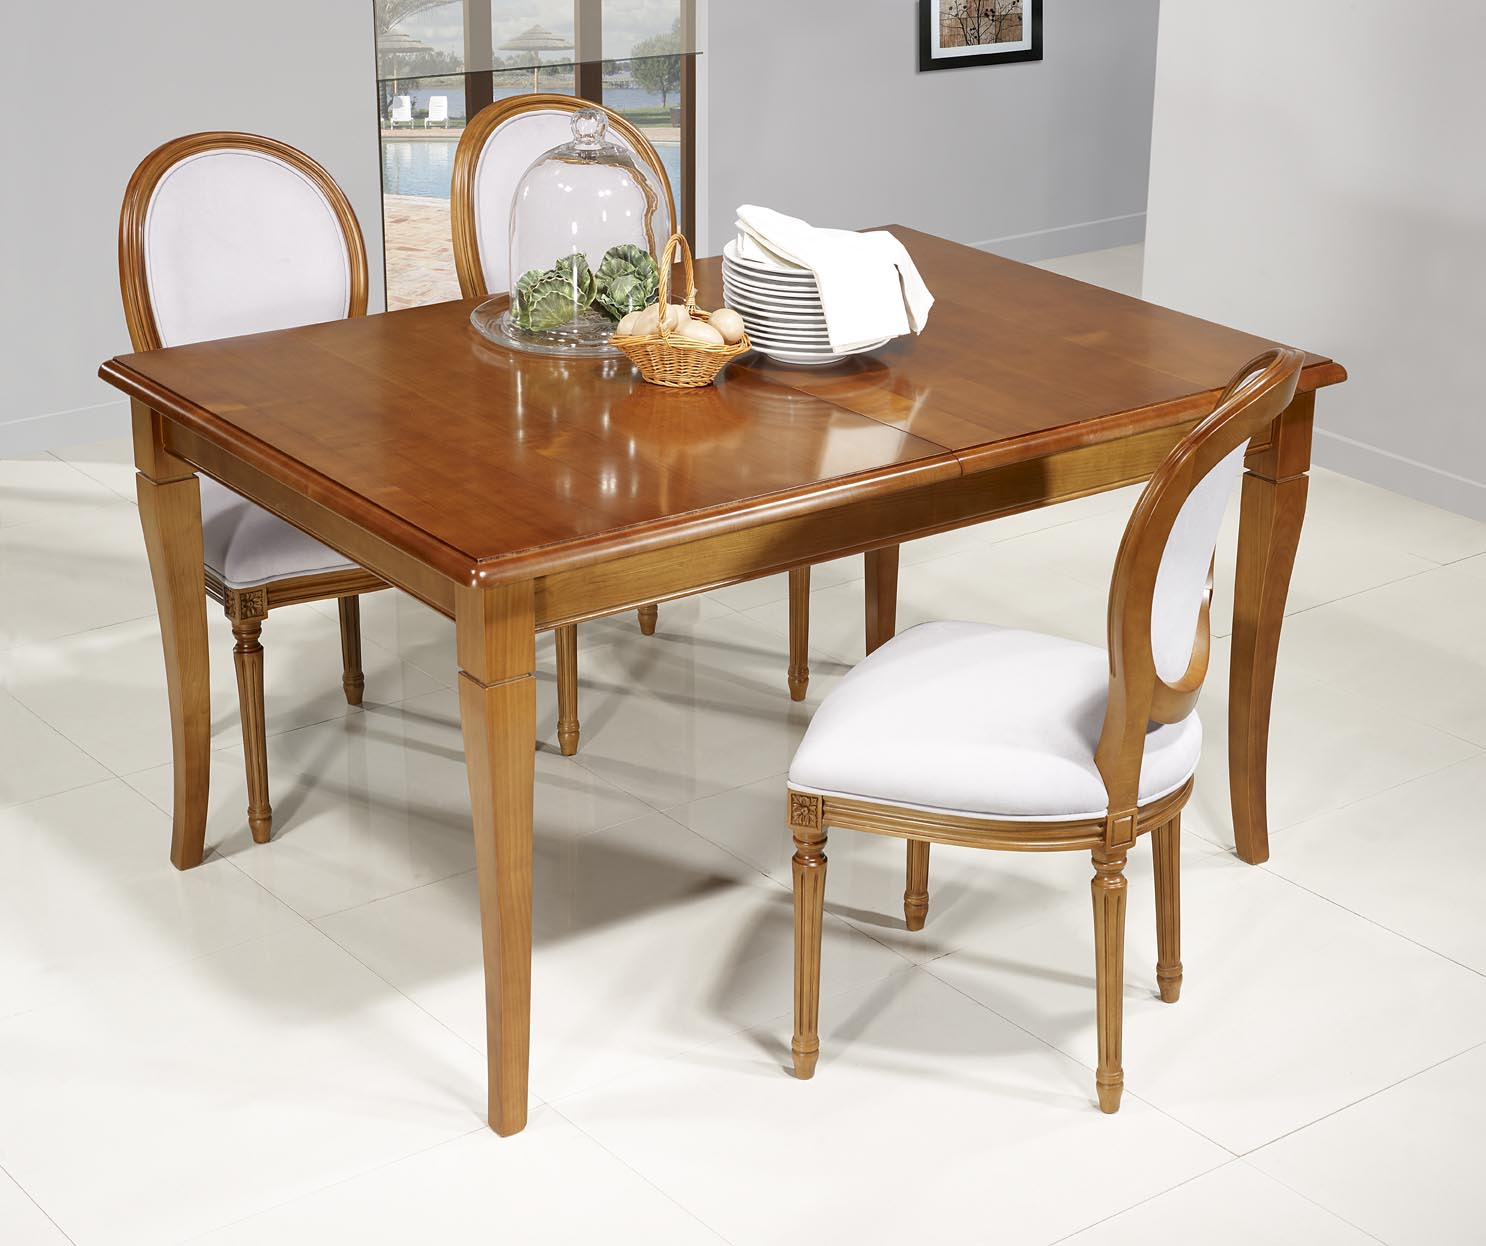 Table de repas emeline en merisier massif de style louis for Table repas